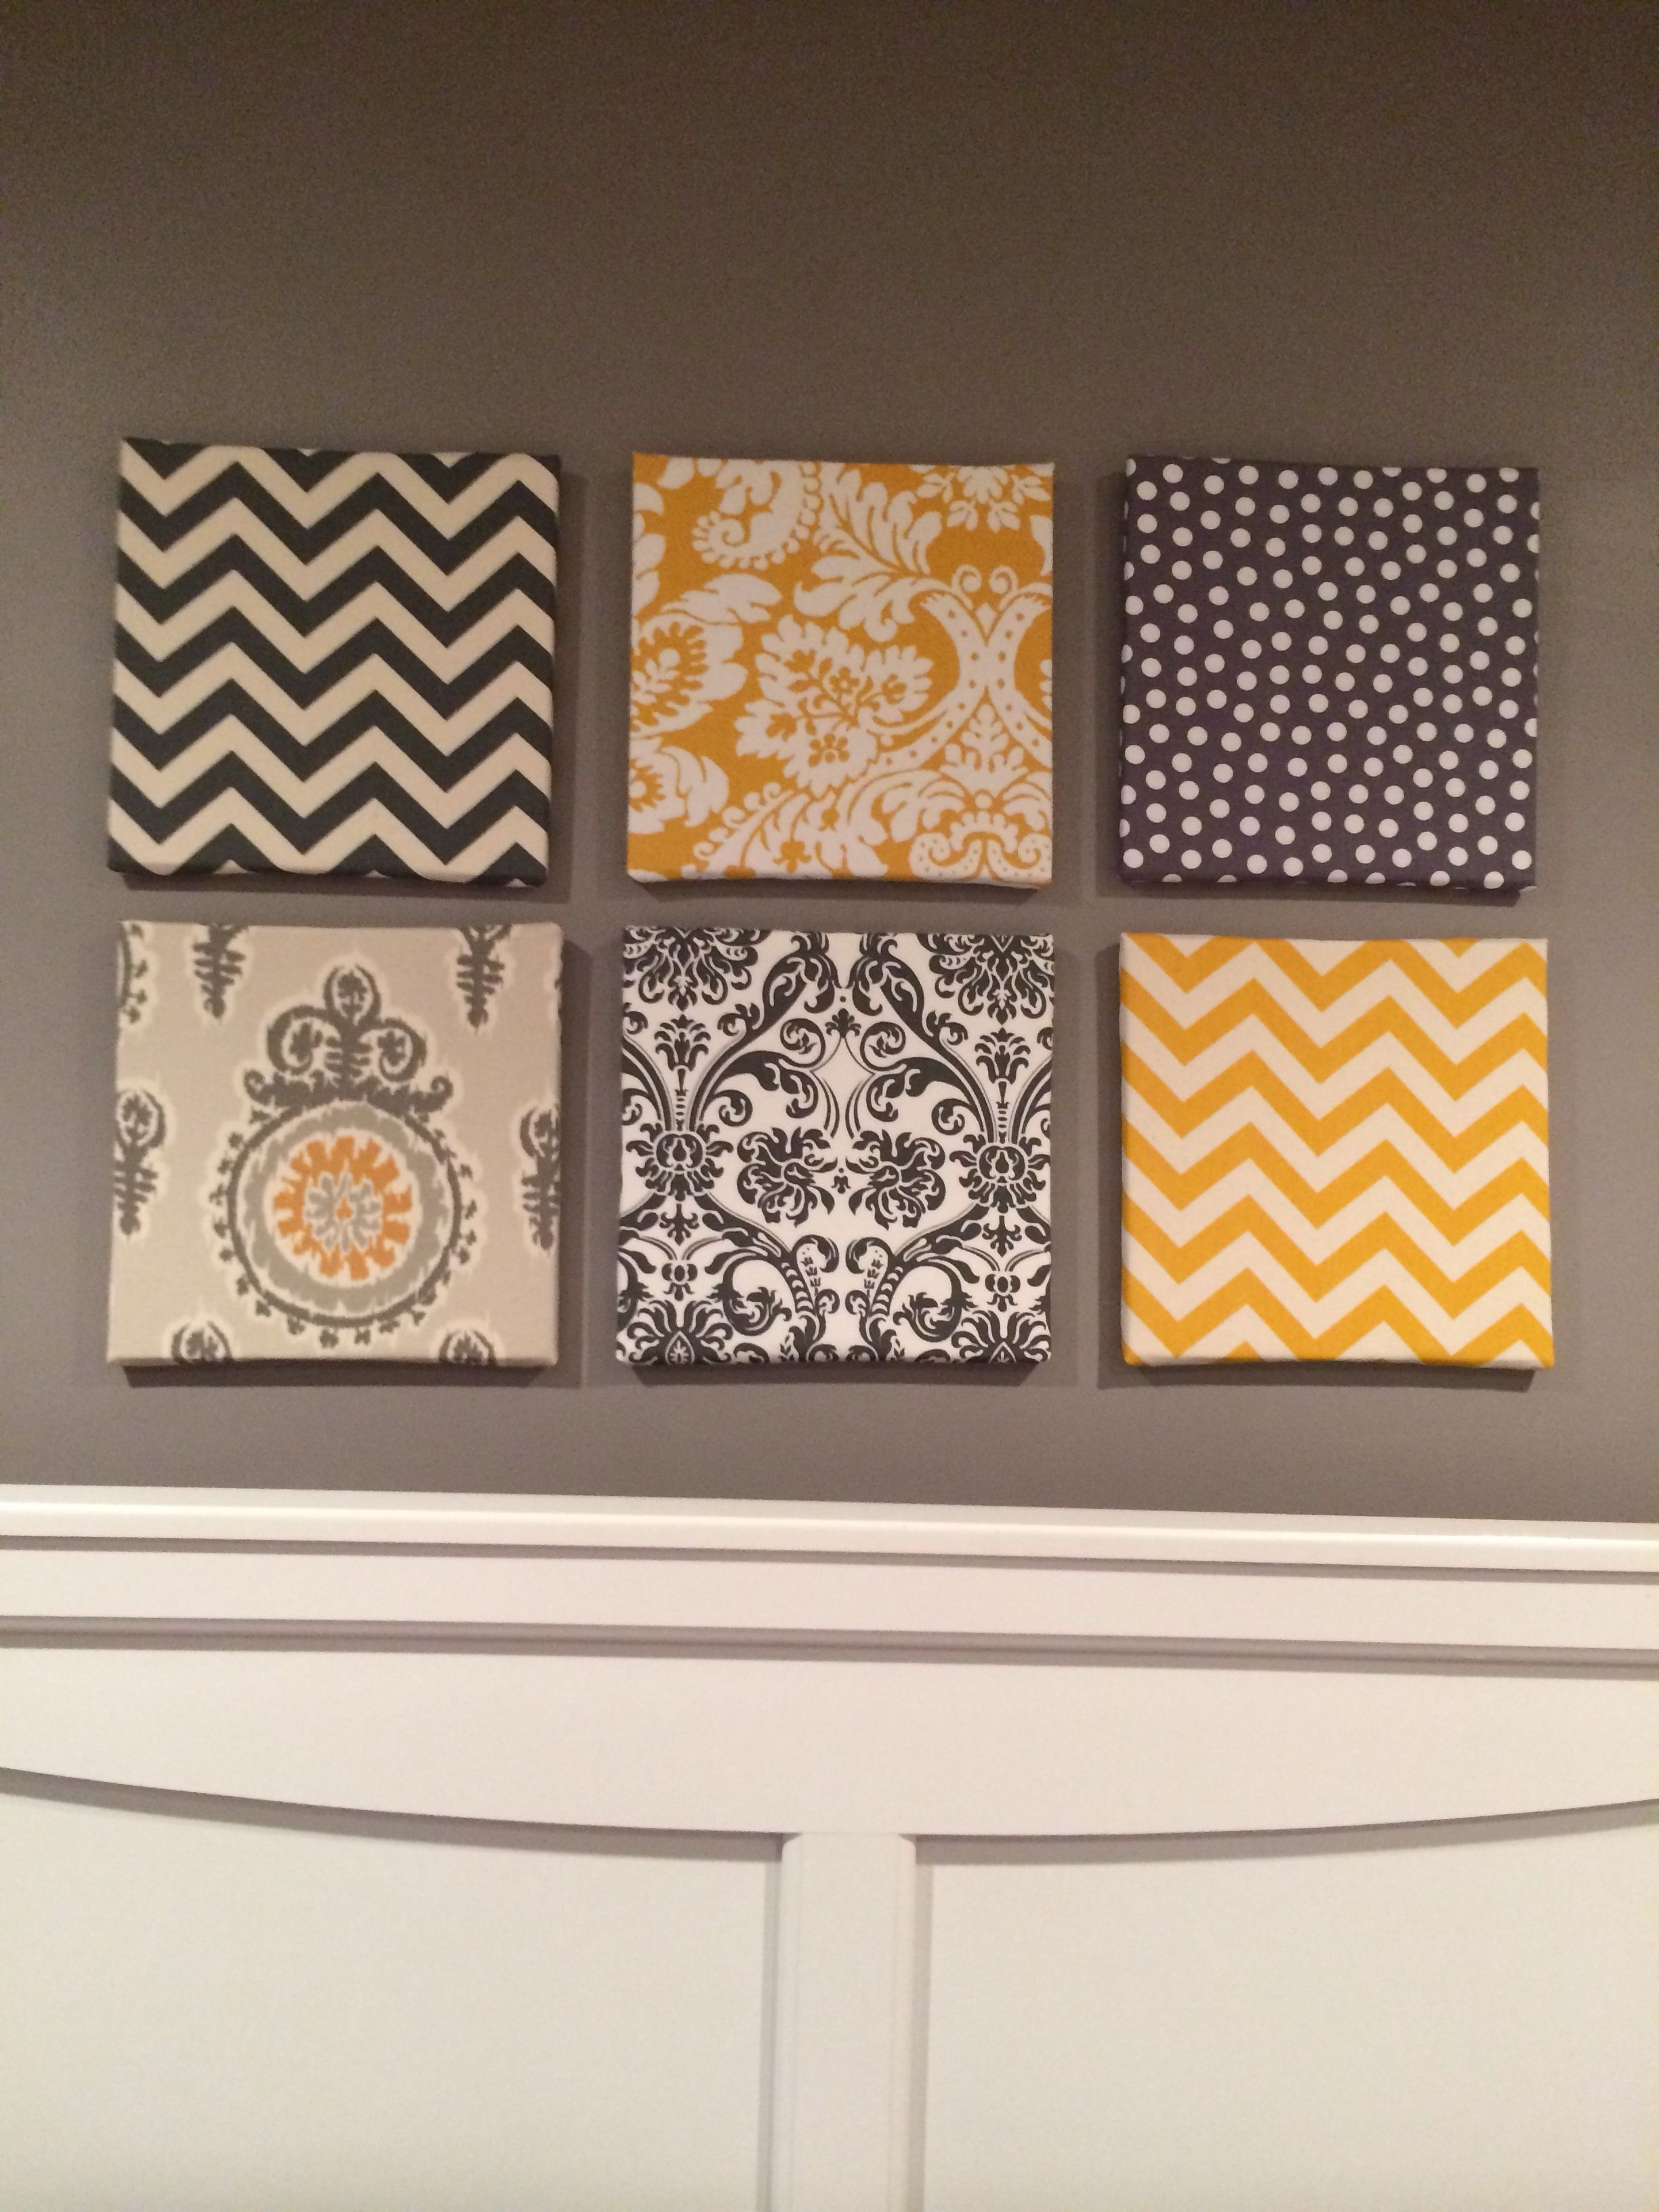 Newest My Fabric Over Canvas Wall Art For My Gray And Yellow Themed Room Within Canvas Wall Art With Fabric (View 12 of 15)